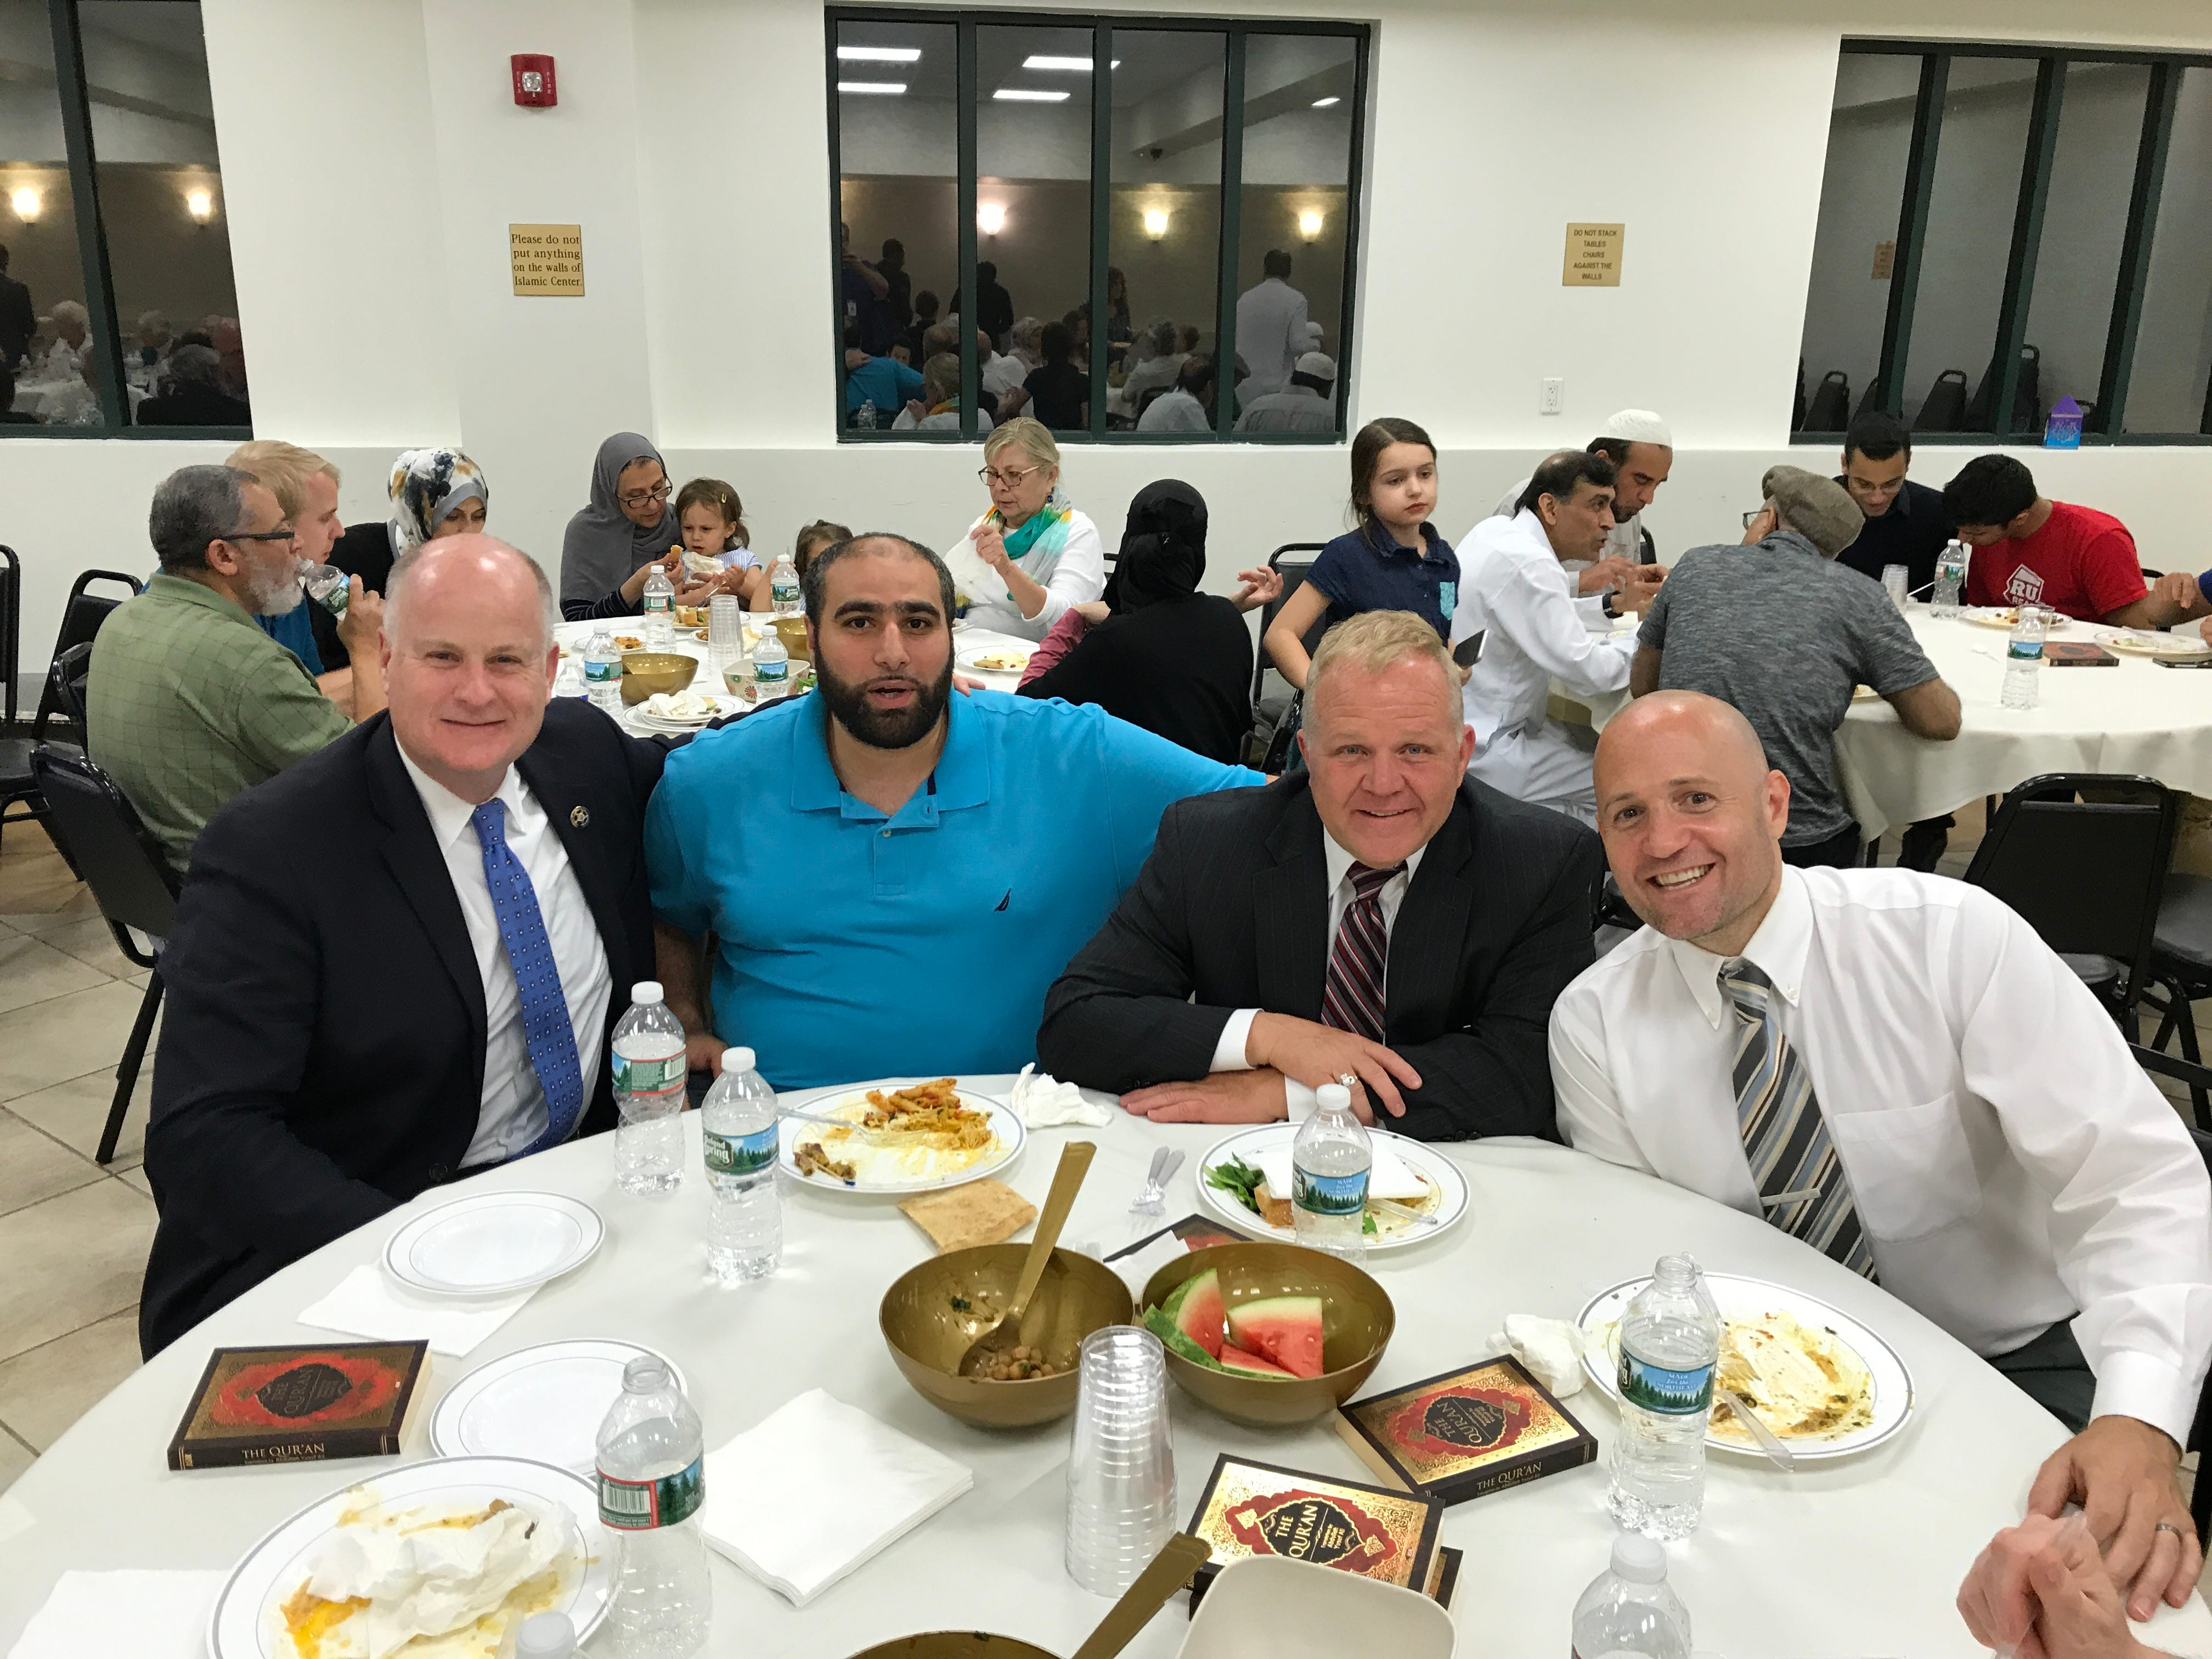 Iftar dinner breaks Ramadan fast in Boonton